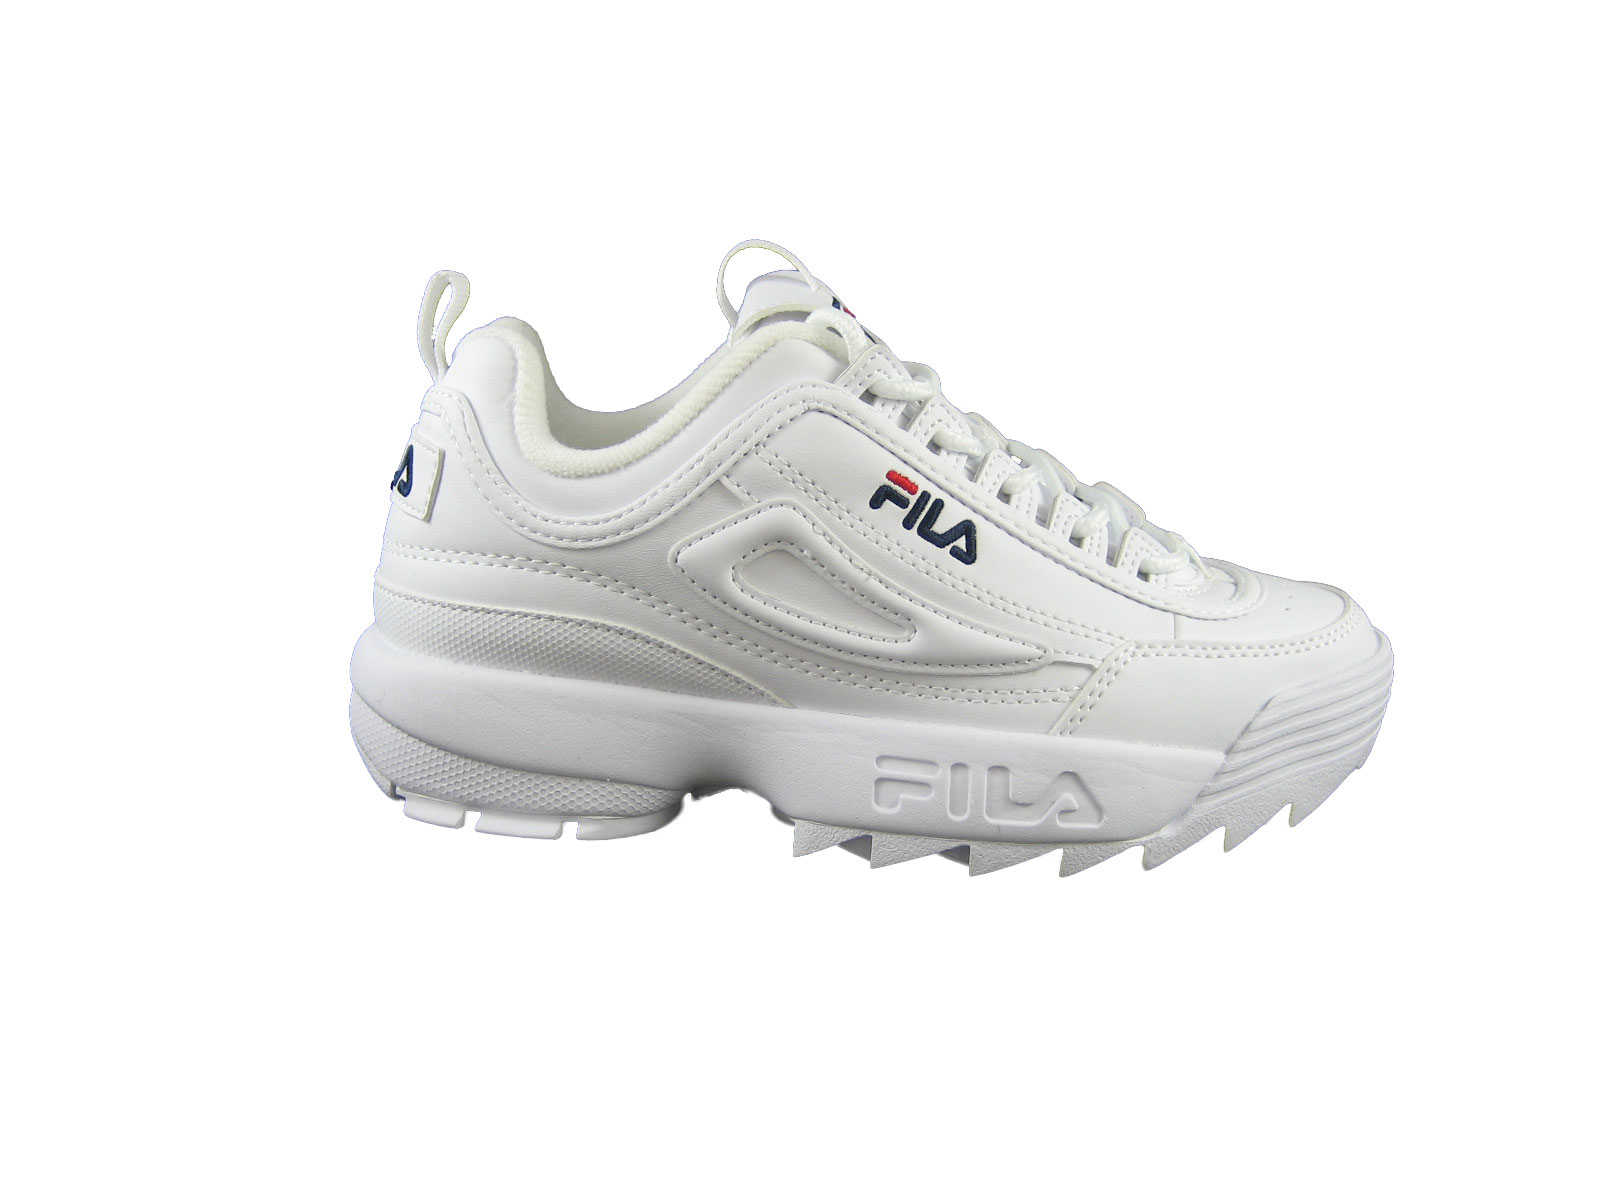 I19 Fila Distruptor Low 1fg White.jpg